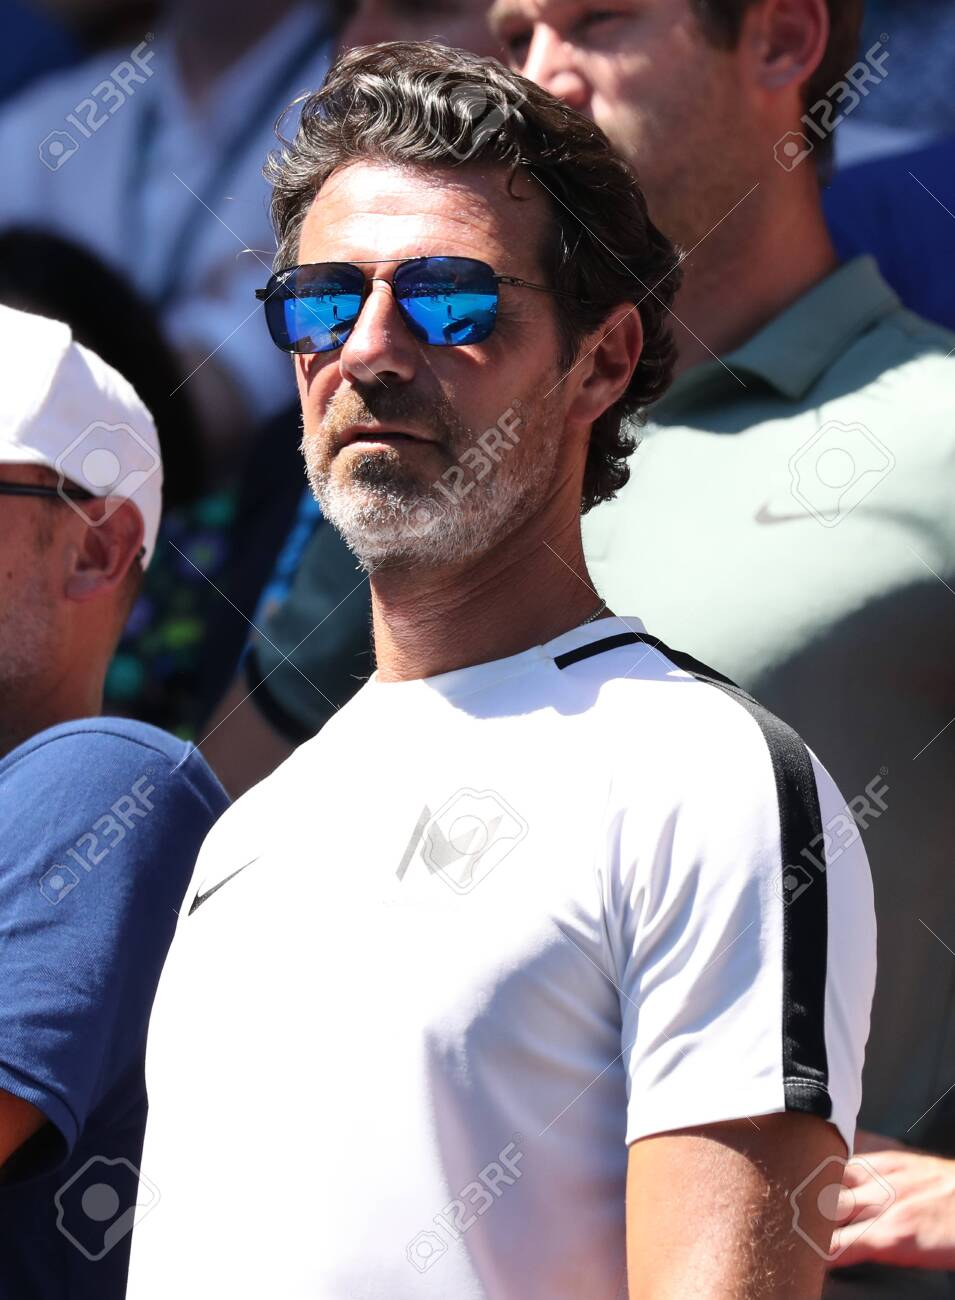 Melbourne Australia January 21 2019 Coach Patrick Mouratoglou Stock Photo Picture And Royalty Free Image Image 122072921